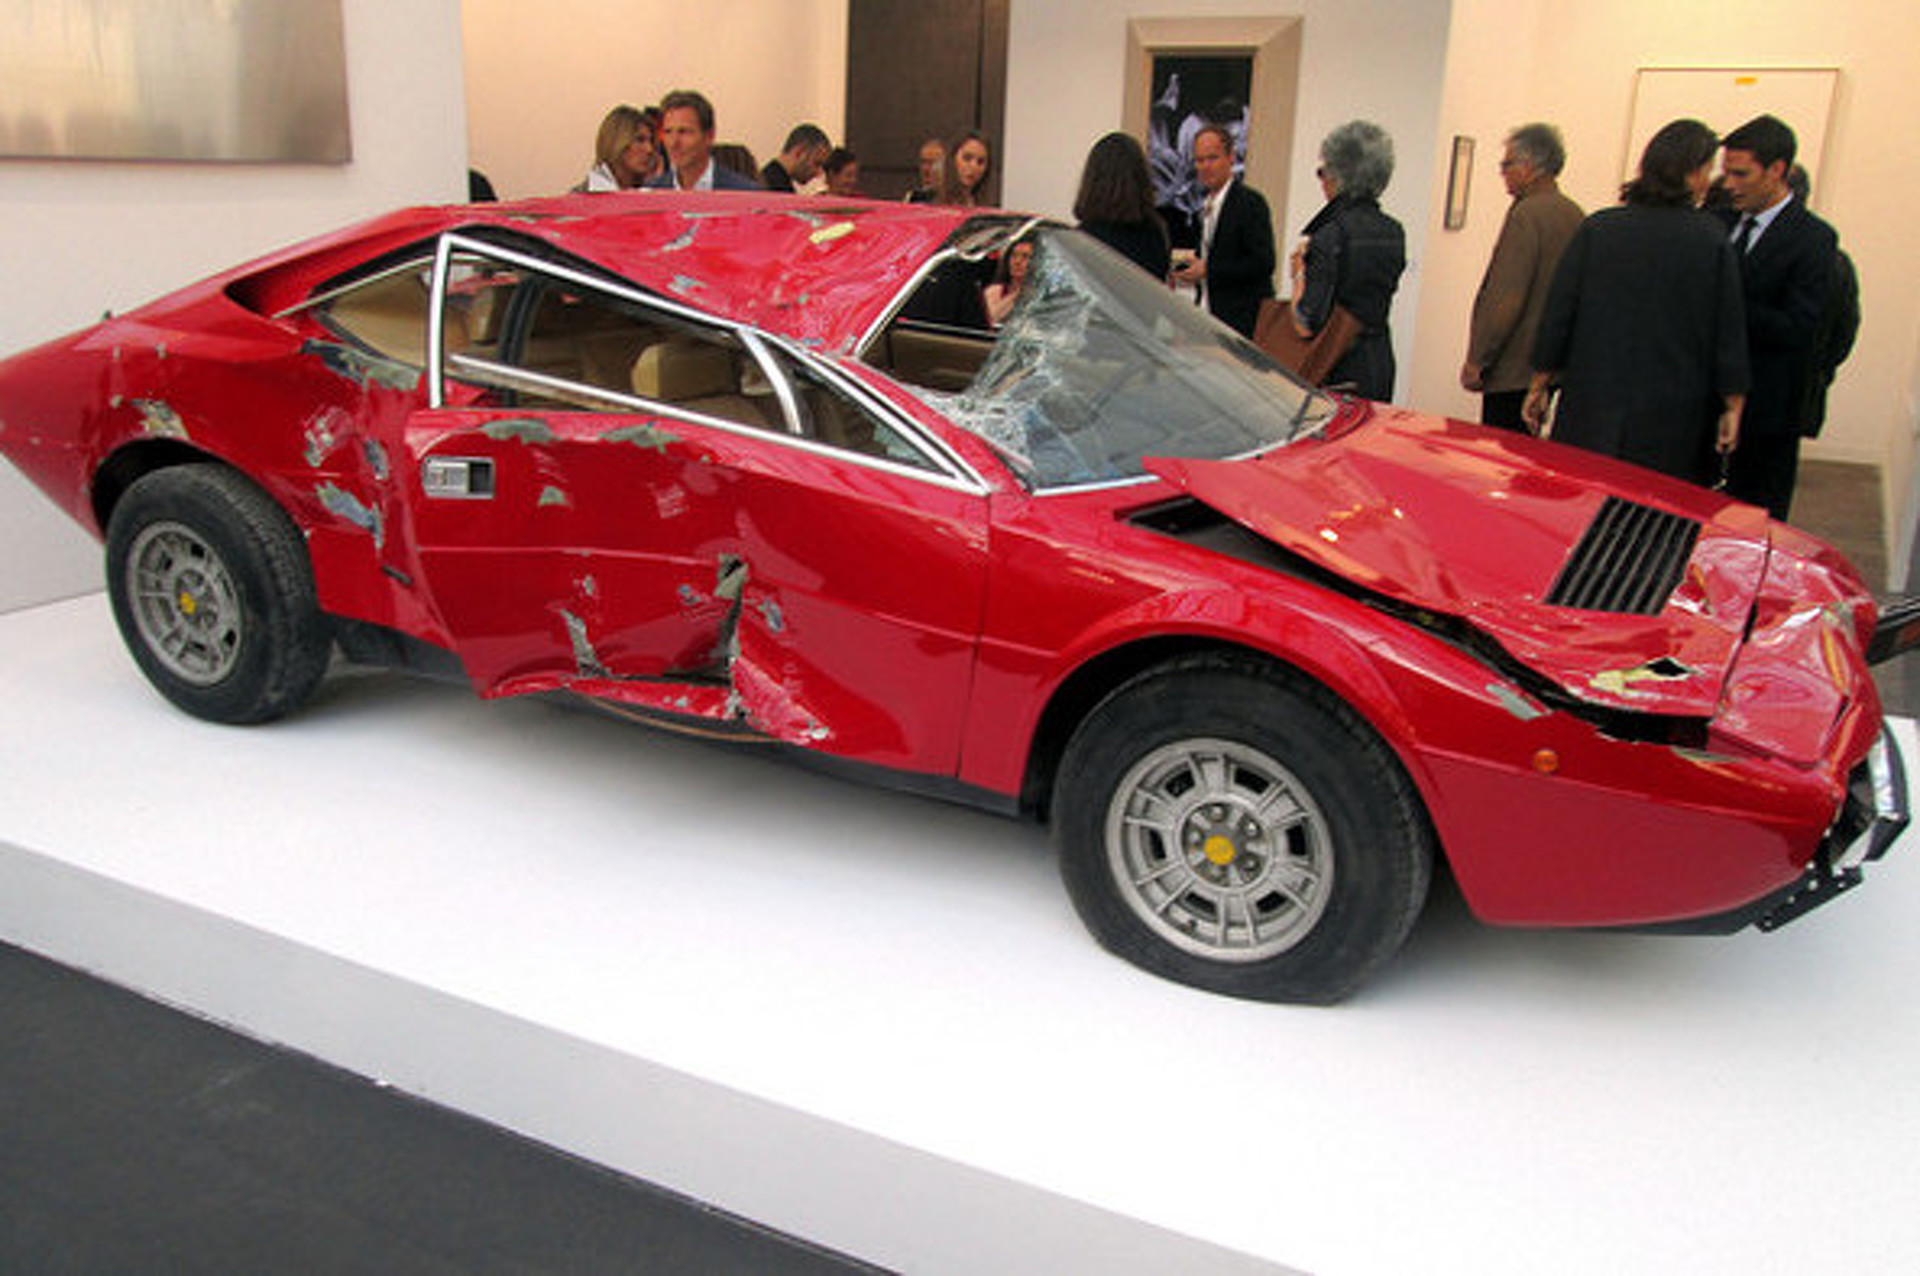 $250K For a Wrecked Ferrari: Welcome to the French Art World